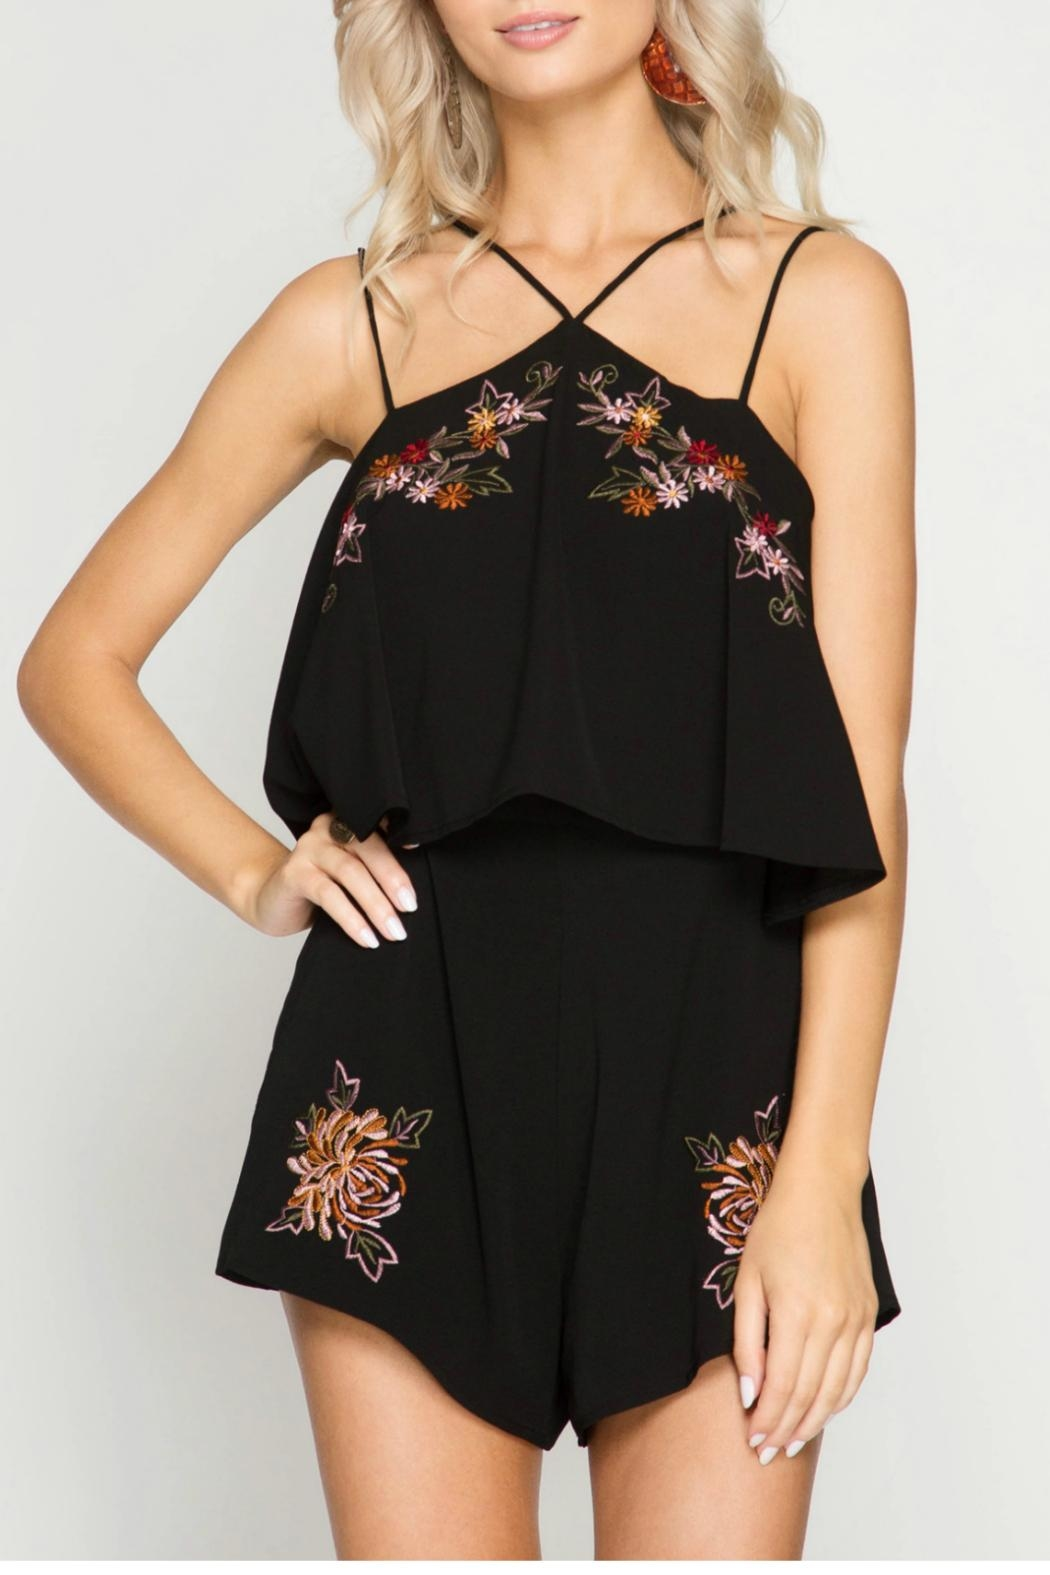 She + Sky Ruffled Embroidered Romper - Main Image